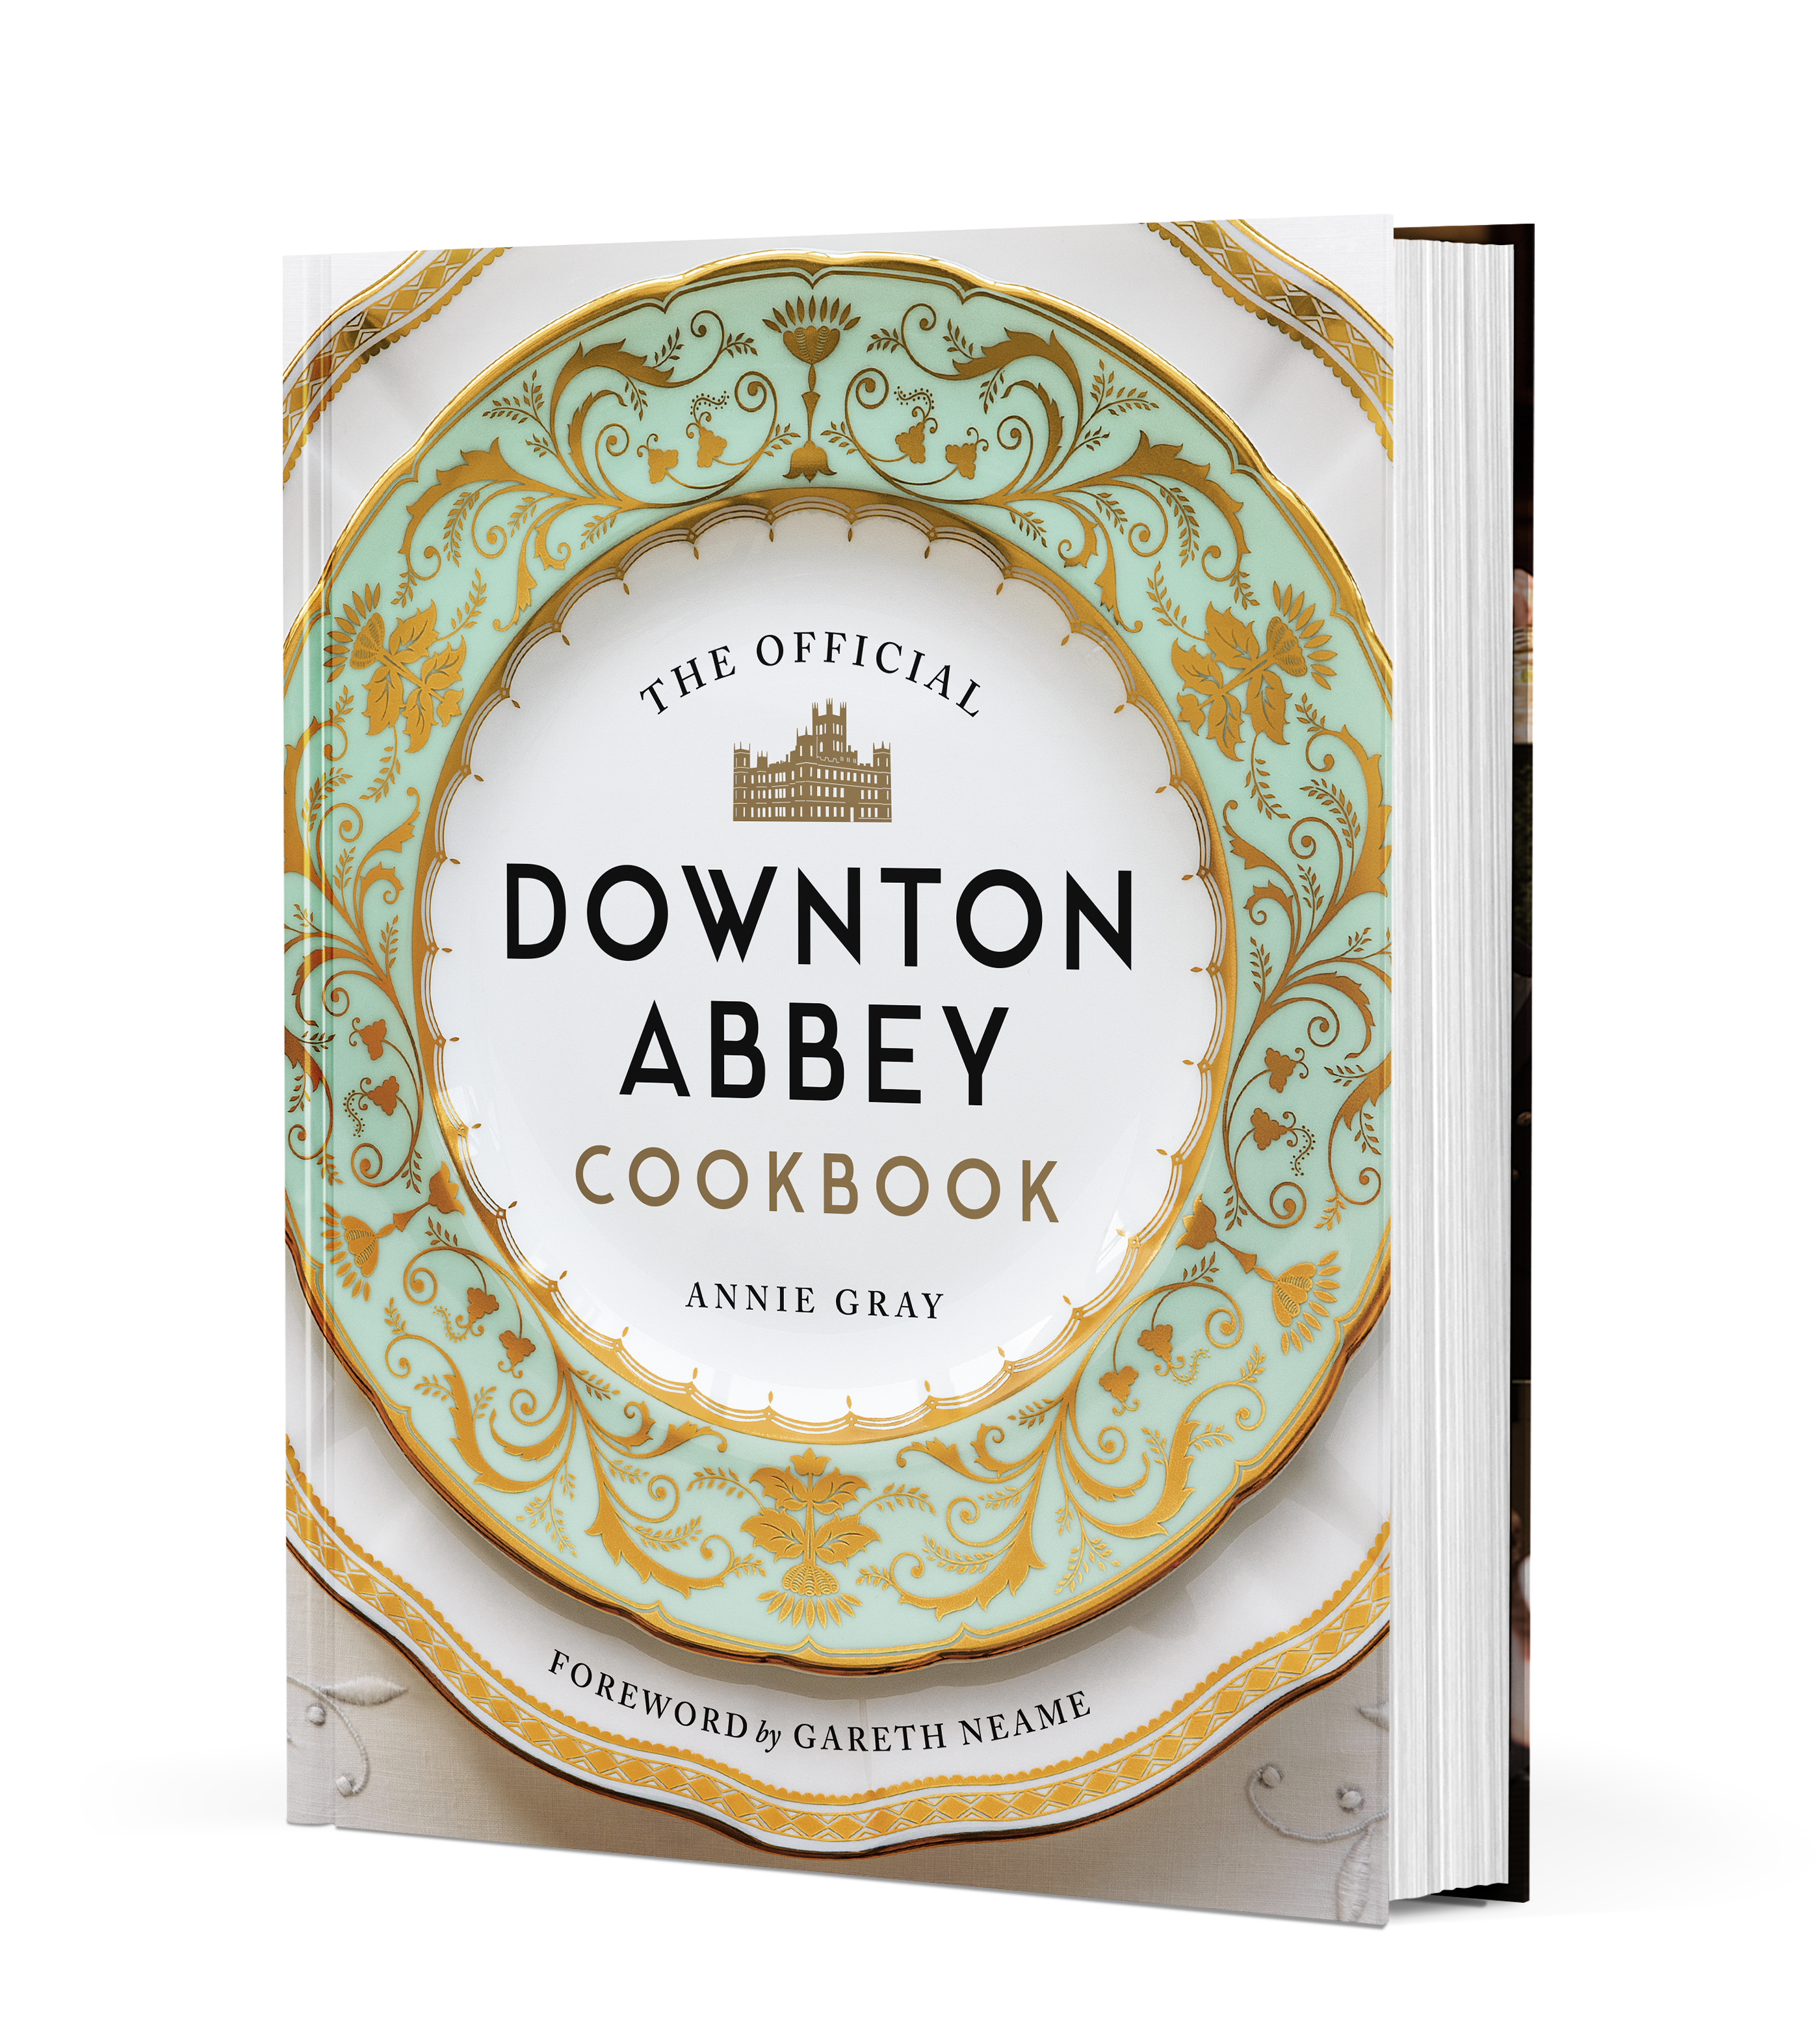 Get an exclusive taste of the official Downton Abbey cookbook with 2 afternoon tea recipes